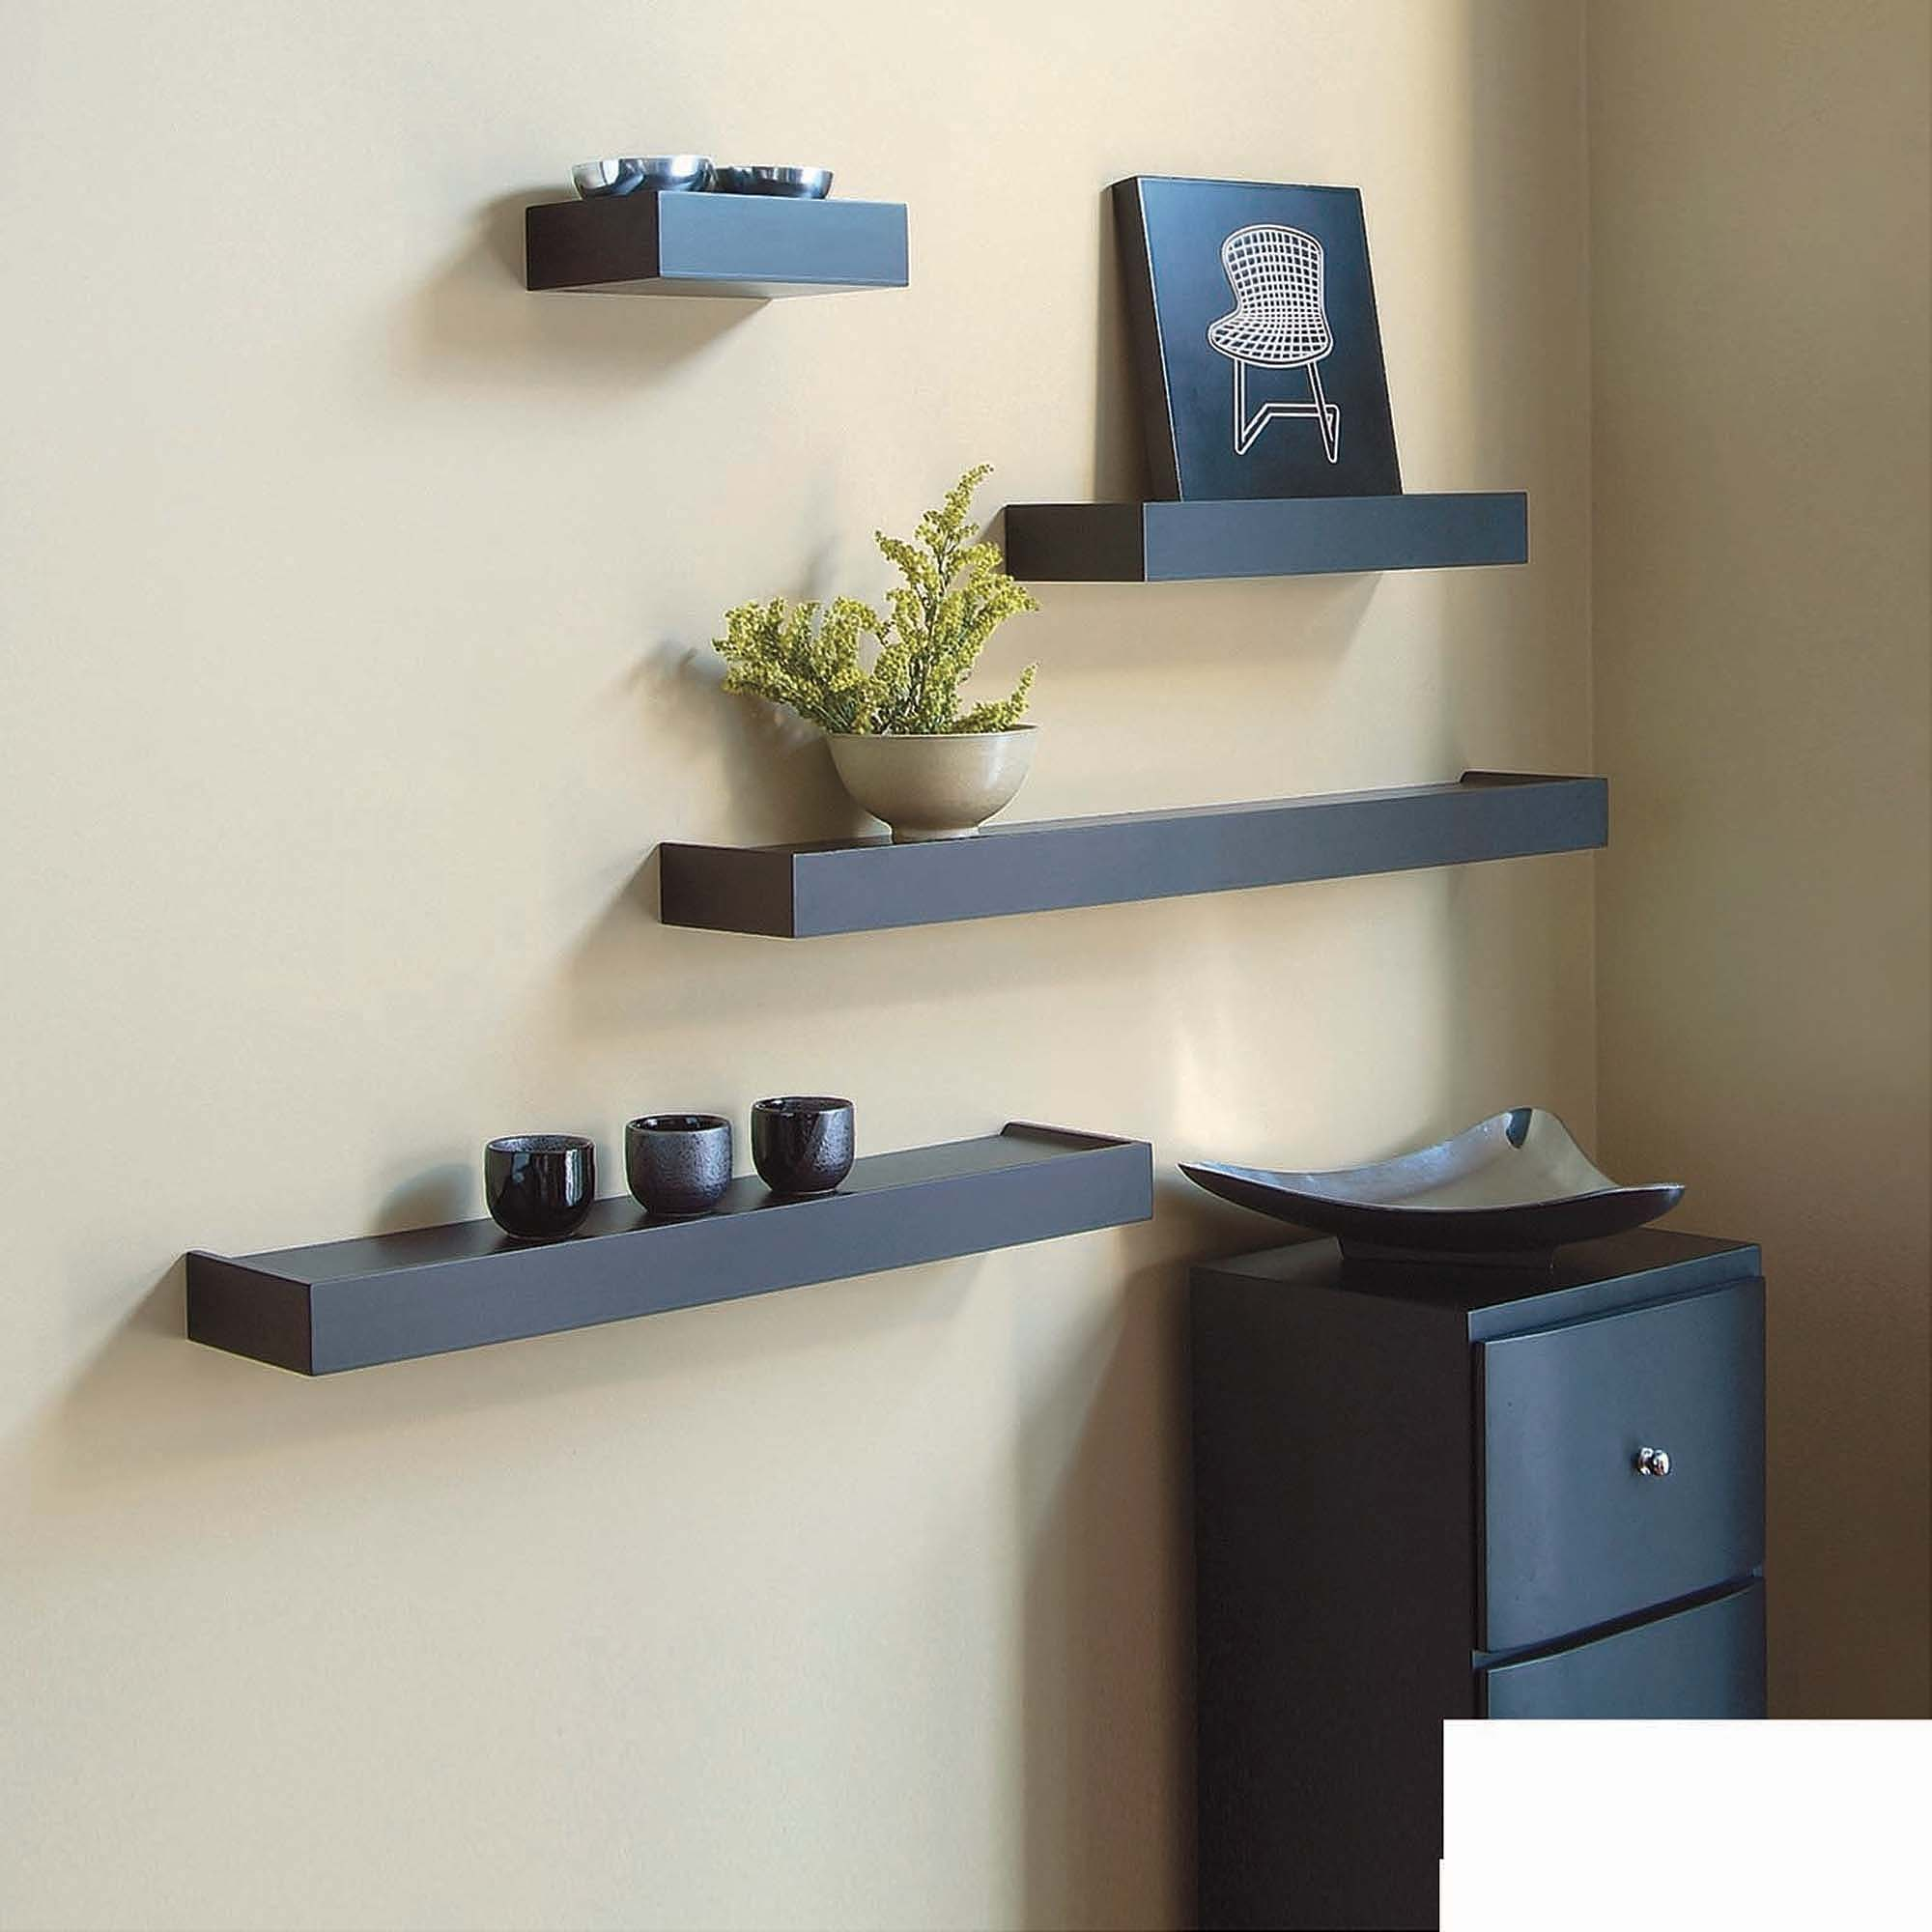 Kiera Grace Vertigo Set of 4 Espresso Wall Shelves 6